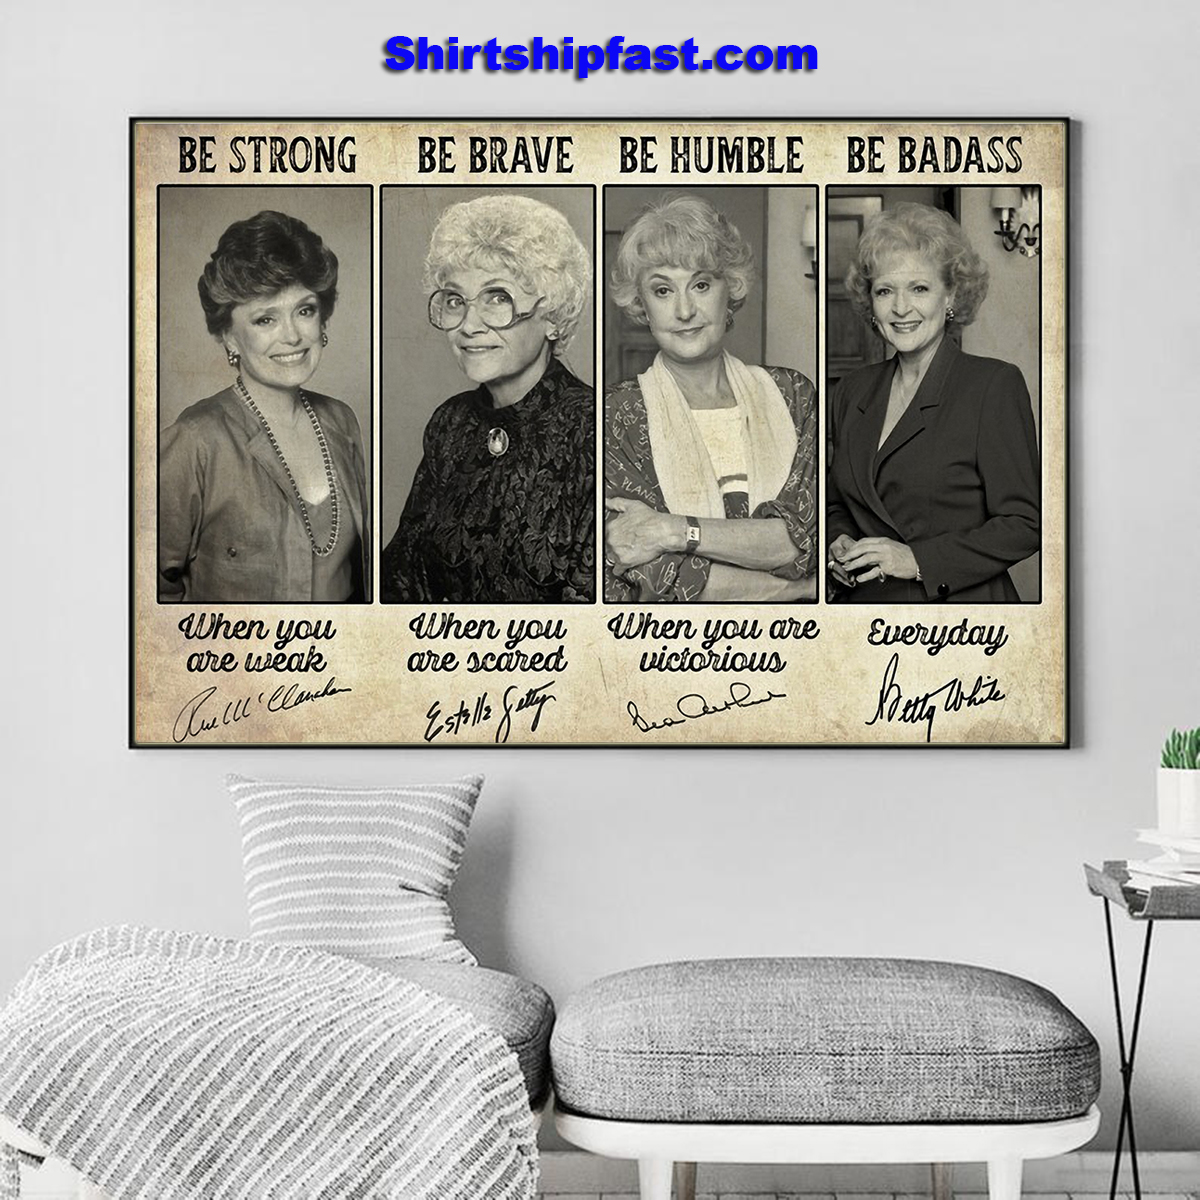 Golden girls be strong be brave be humble be badass signature poster - Picture 3